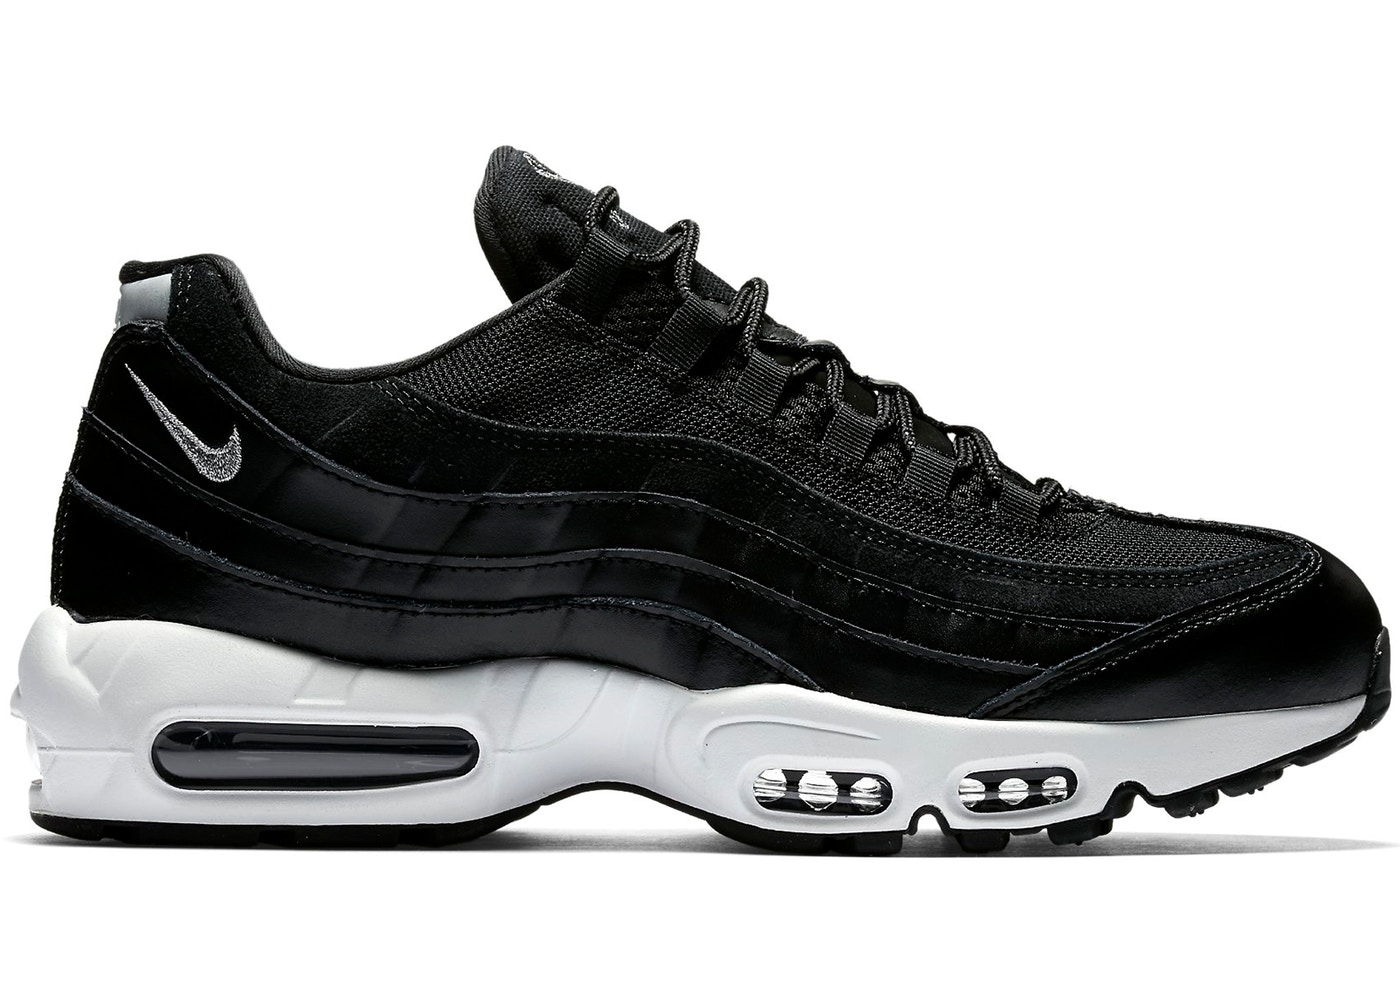 promo code 432d7 e7842 Air Max 95 Rebel Skulls - 538416-008